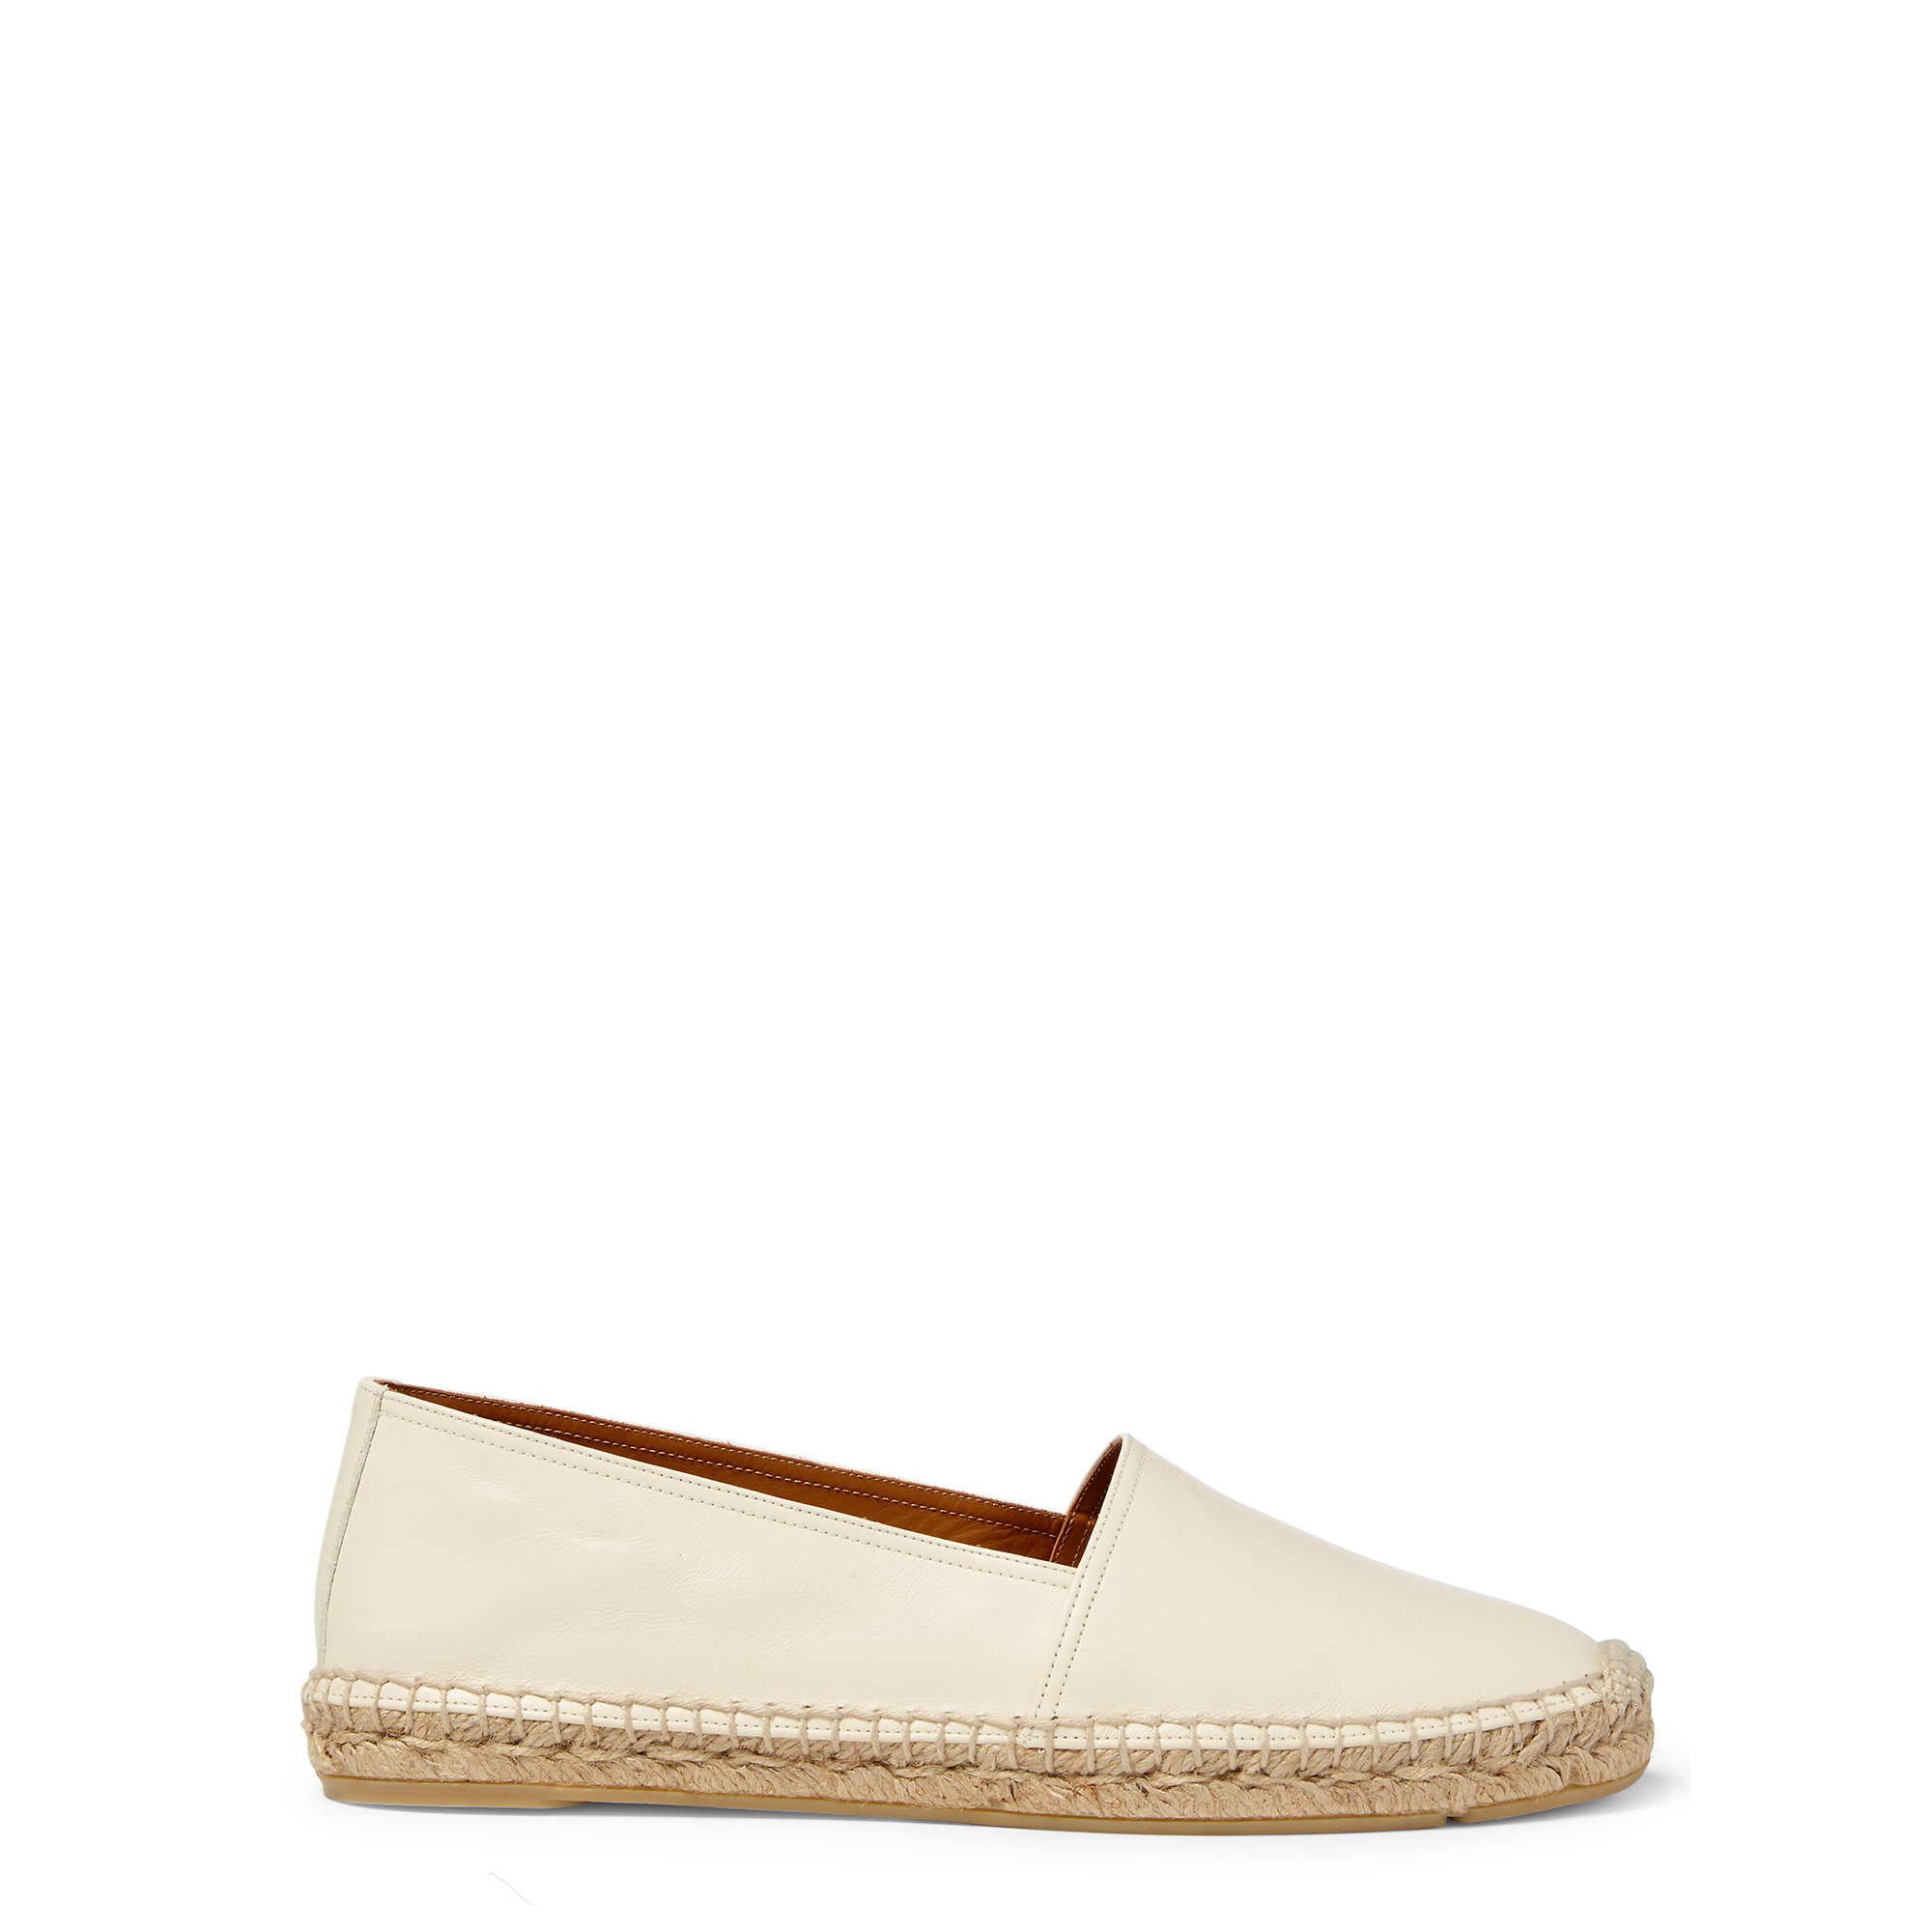 polo ralph lauren jo nappa leather espadrille in white lyst. Black Bedroom Furniture Sets. Home Design Ideas